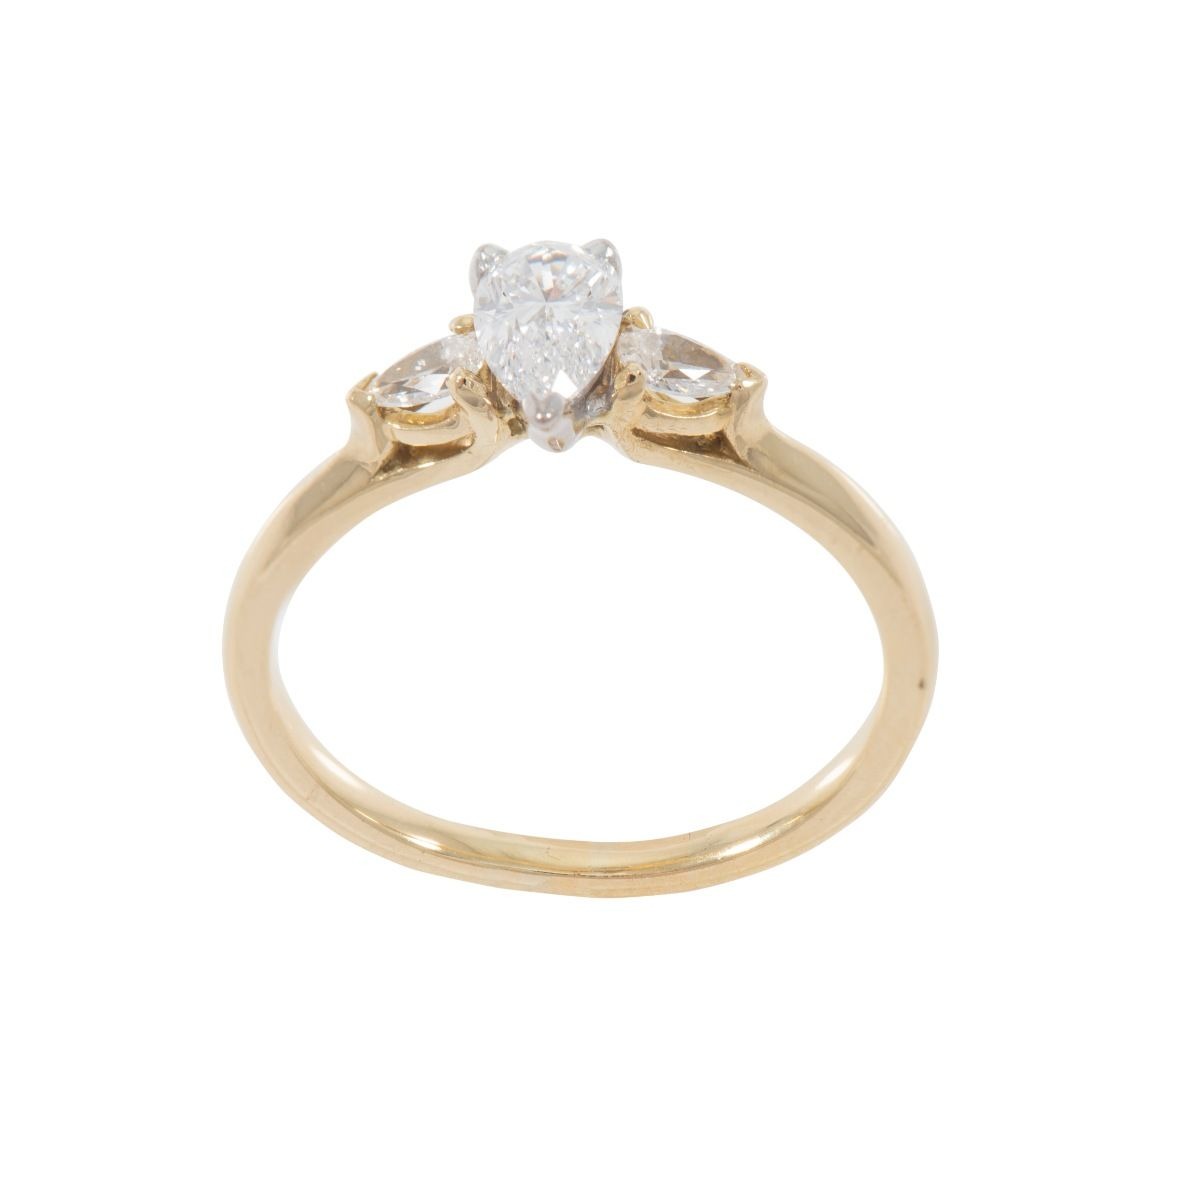 18ct Yellow Gold Ladies Pear Cut 0.66ct Diamond Trilogy Ring Size O